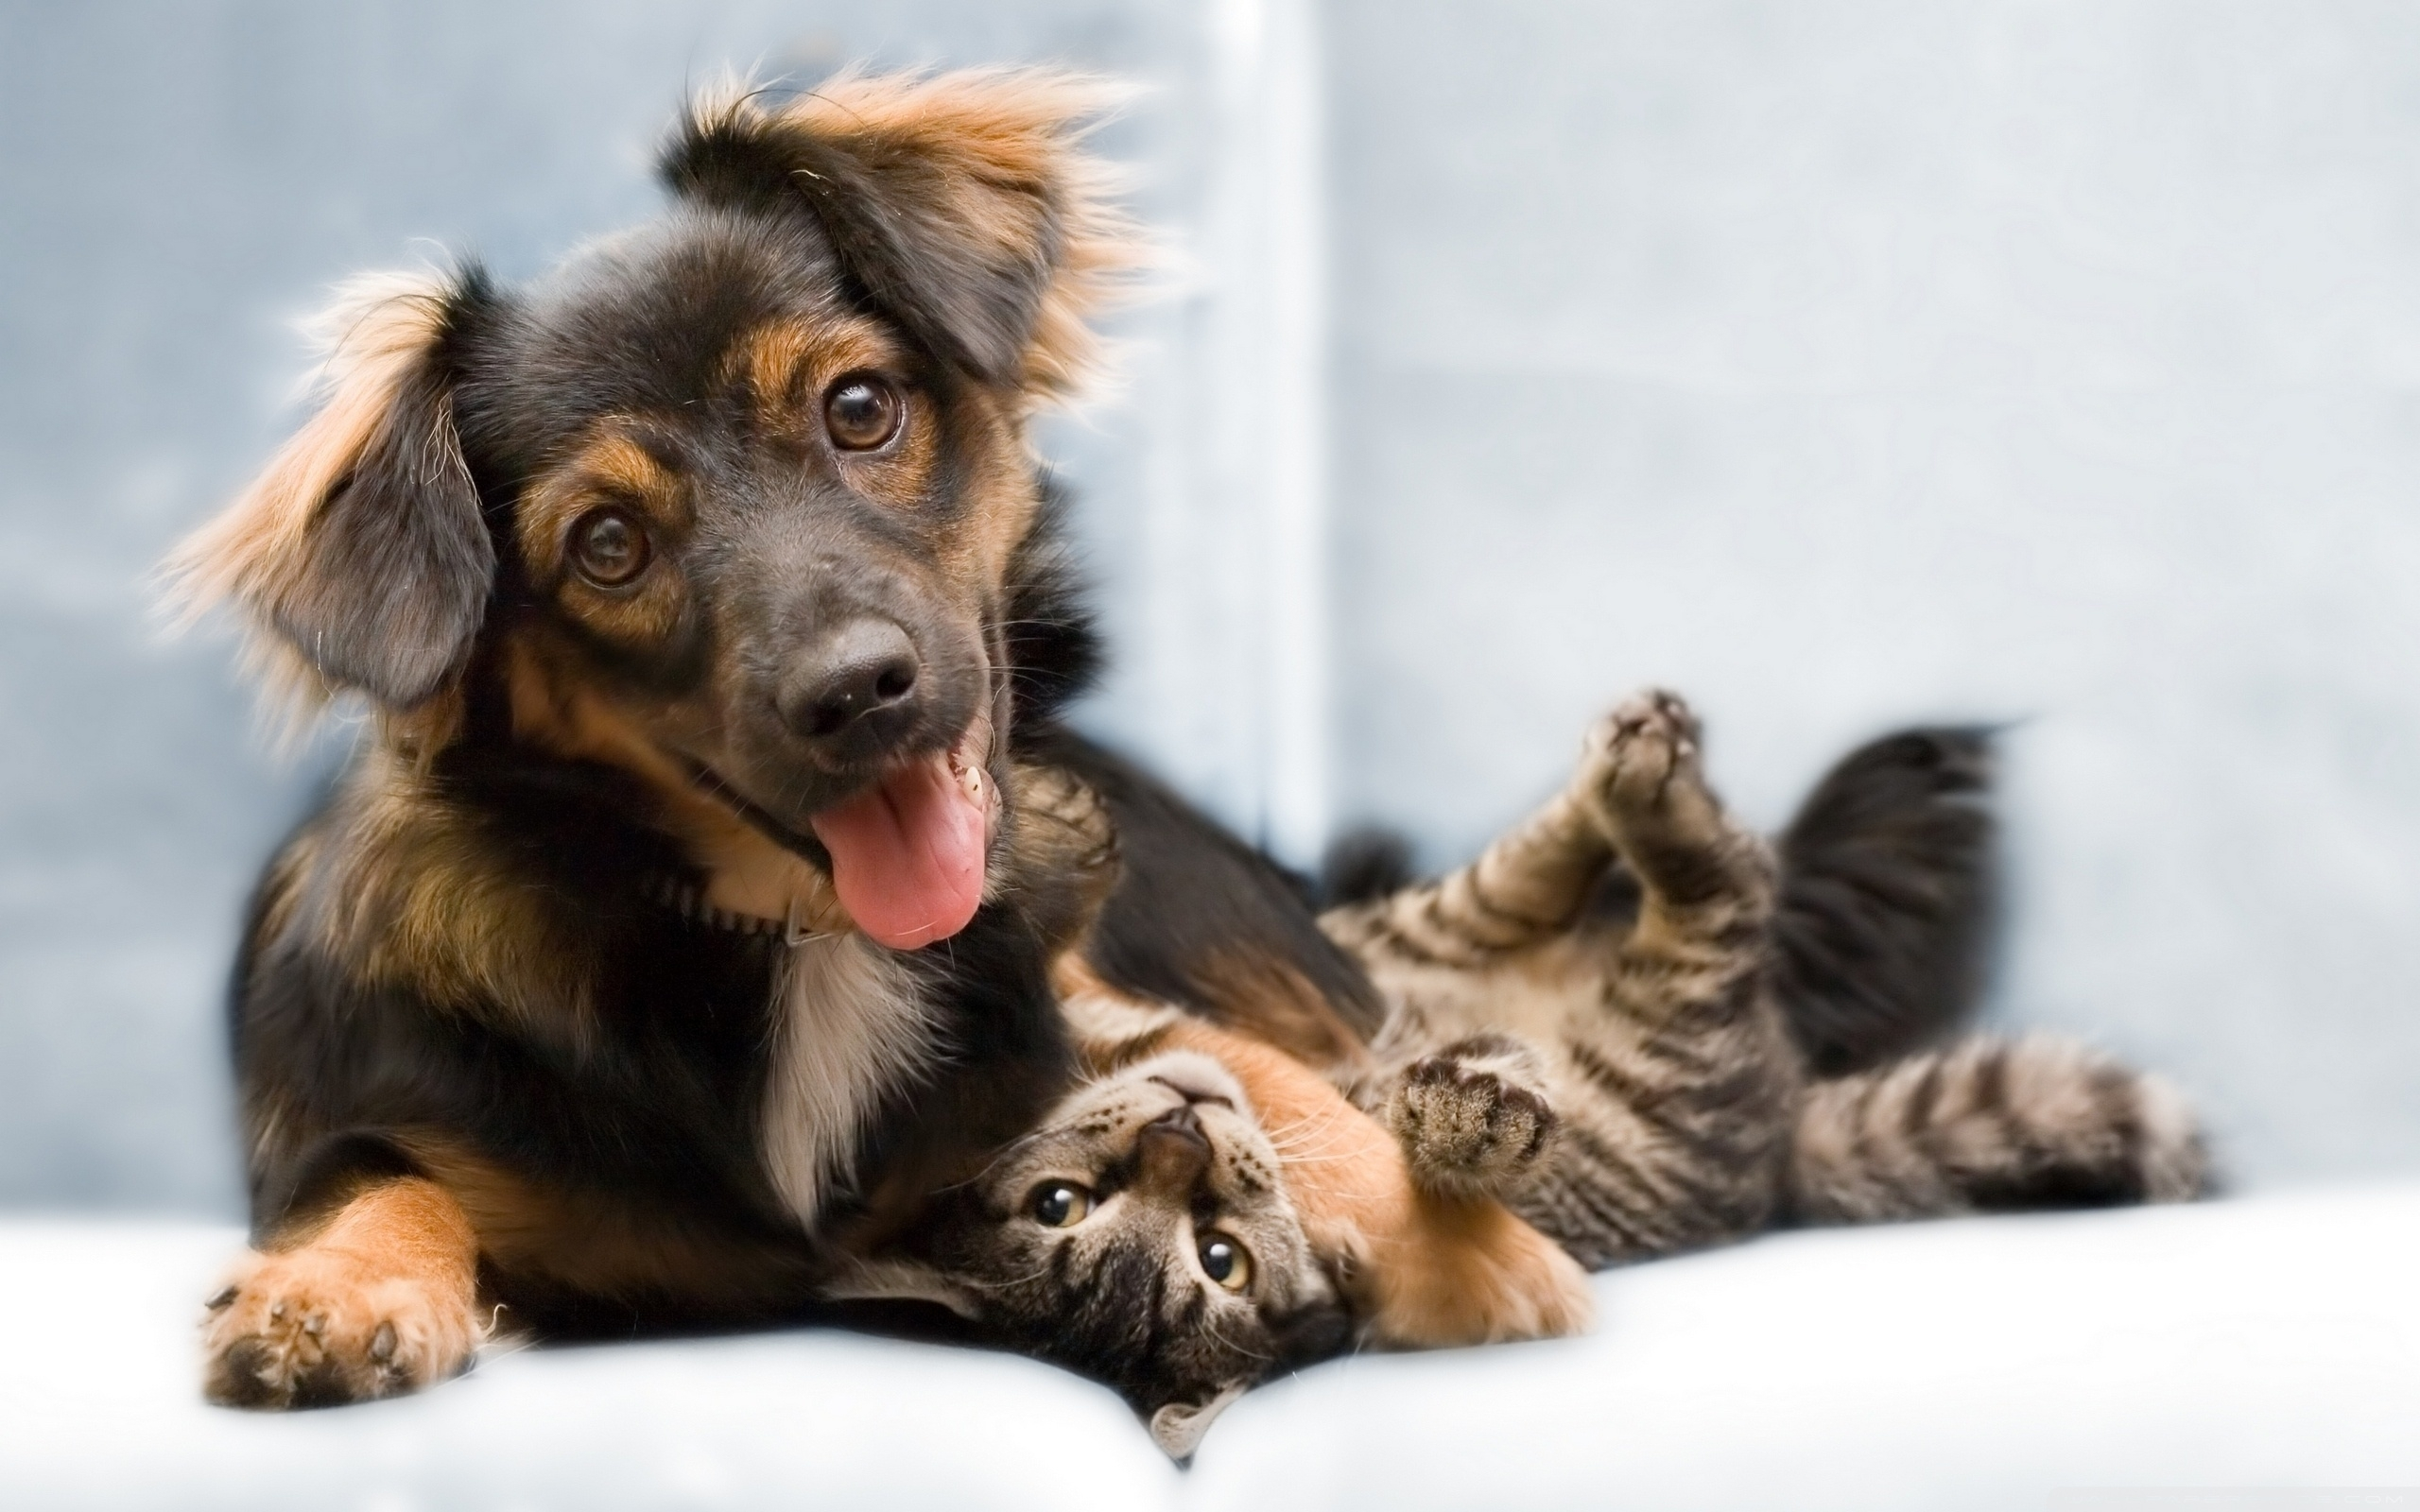 dog and cat friendship ❤ 4k hd desktop wallpaper for 4k ultra hd tv